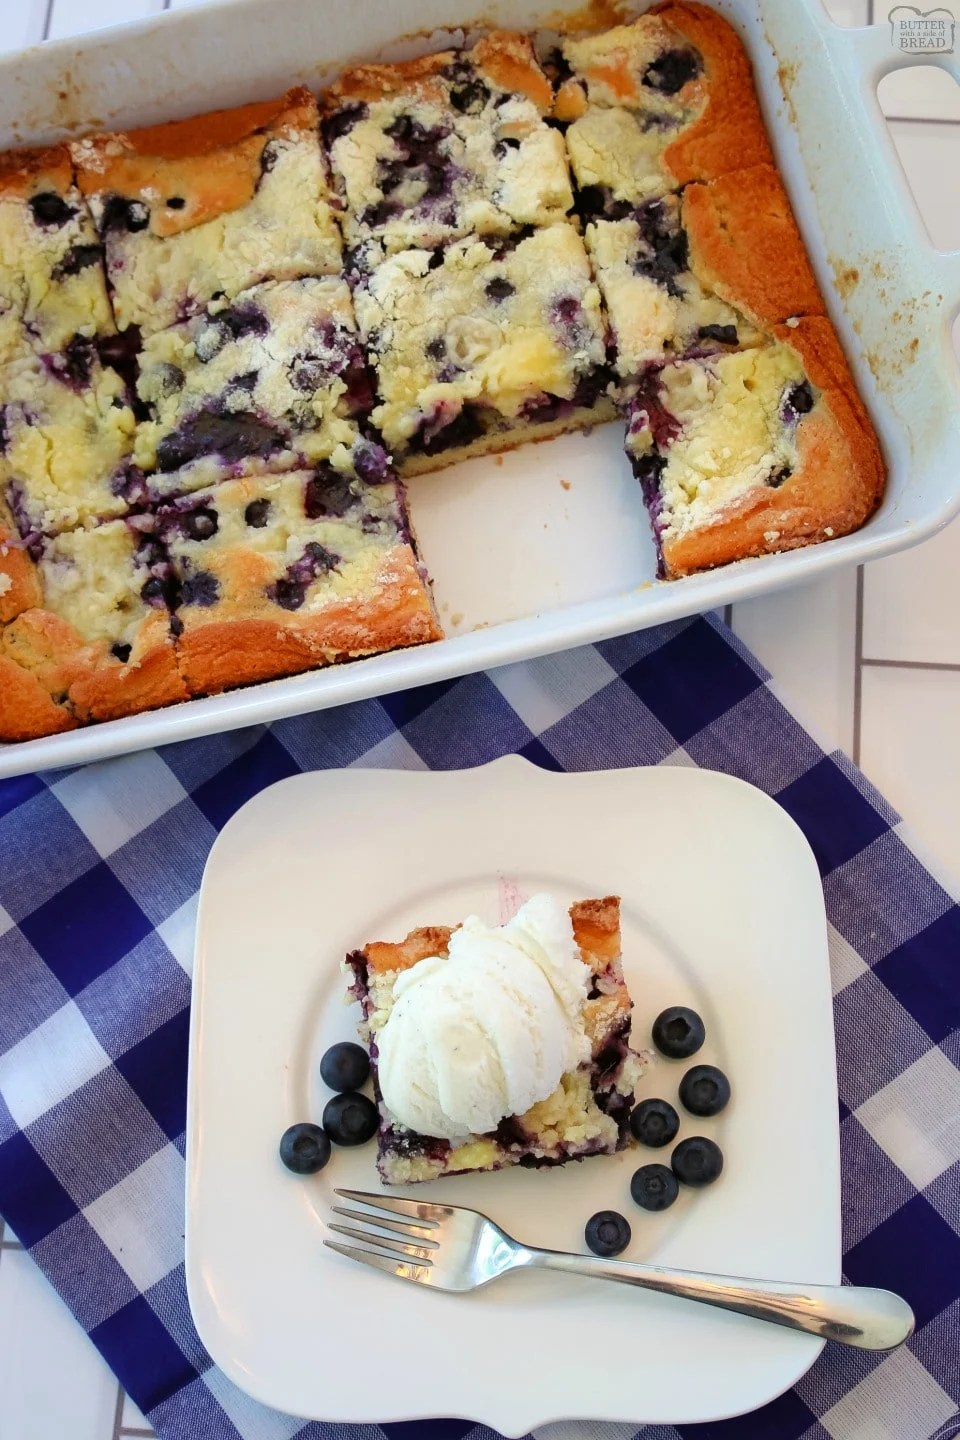 Buttery Blueberry Snack Cake